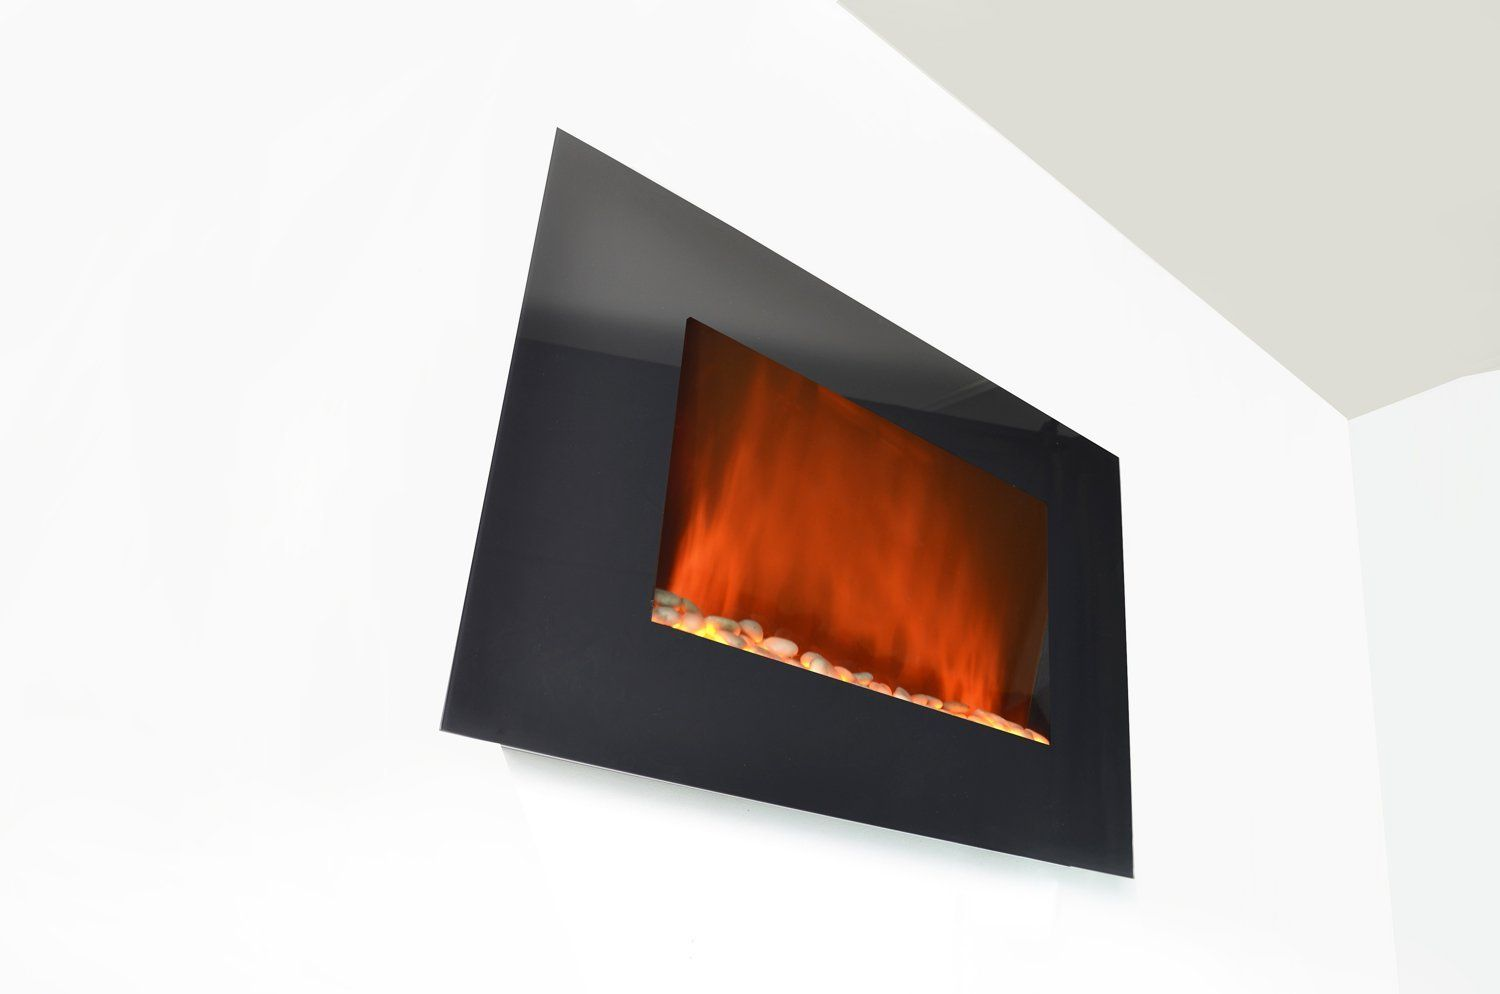 Amazon Com 36 Inch Wall Mount Modern Space Heater Electric Fireplace Heater Flat Tempered Glass W Remote Control Ax Modern Spaces Fireplace Fireplace Inserts